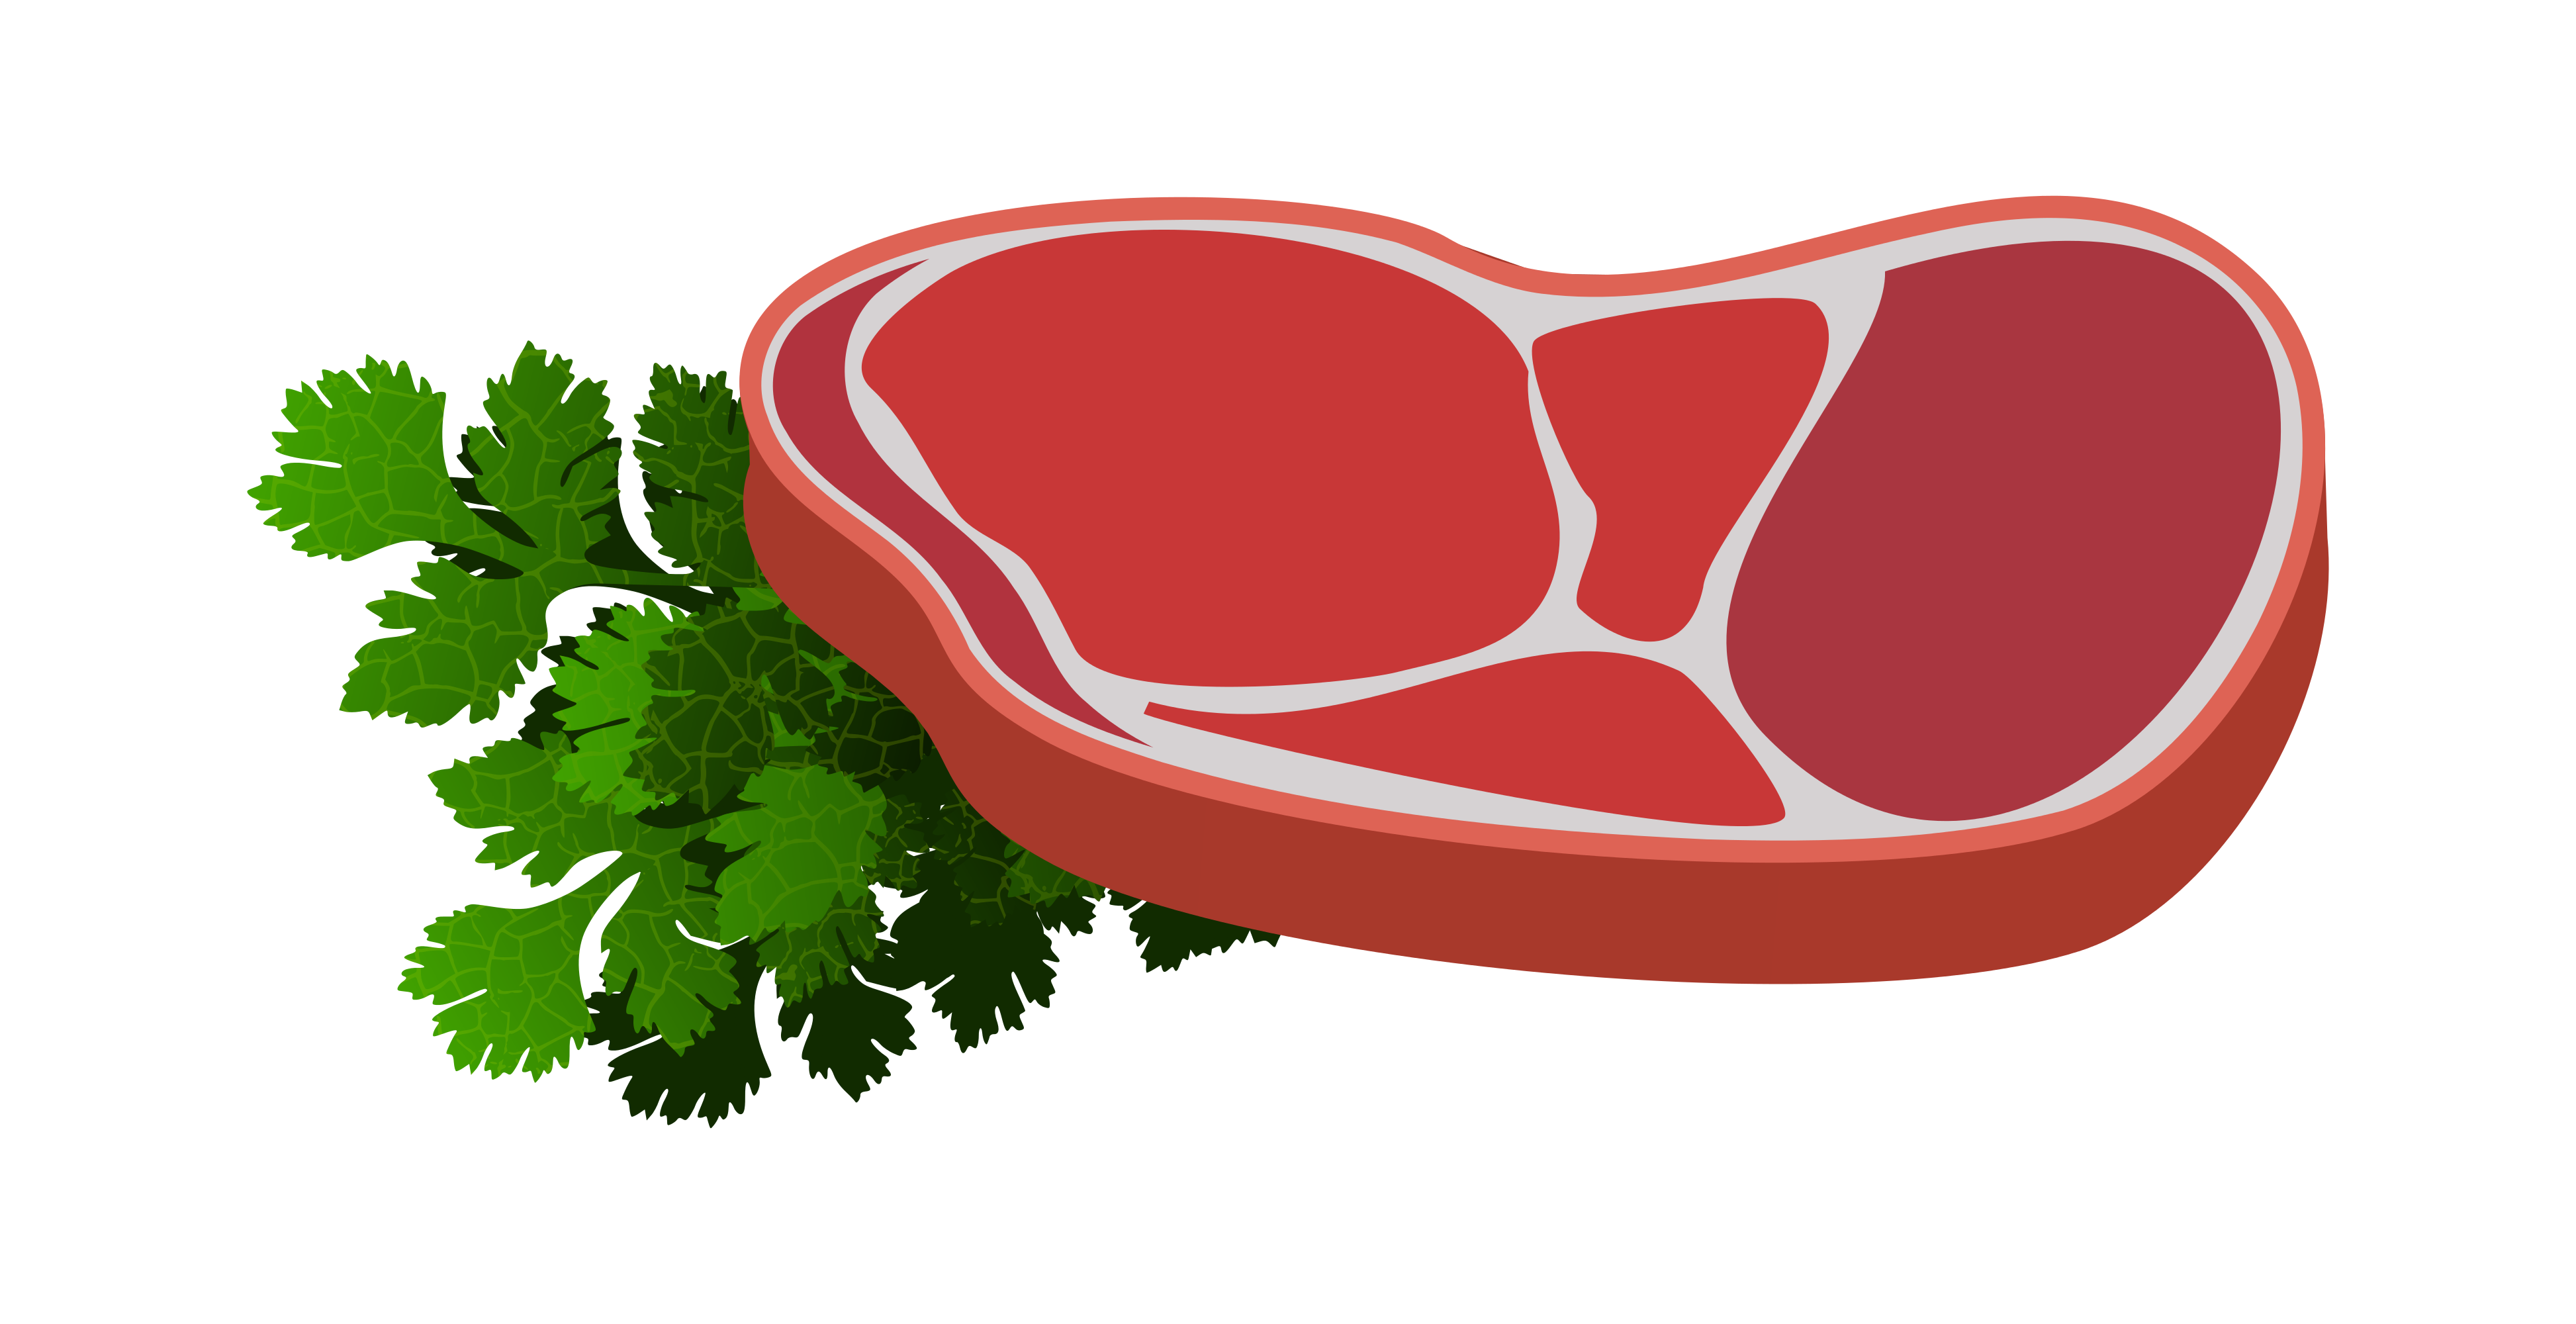 Raw steak x everyday. Heat clipart funky heart